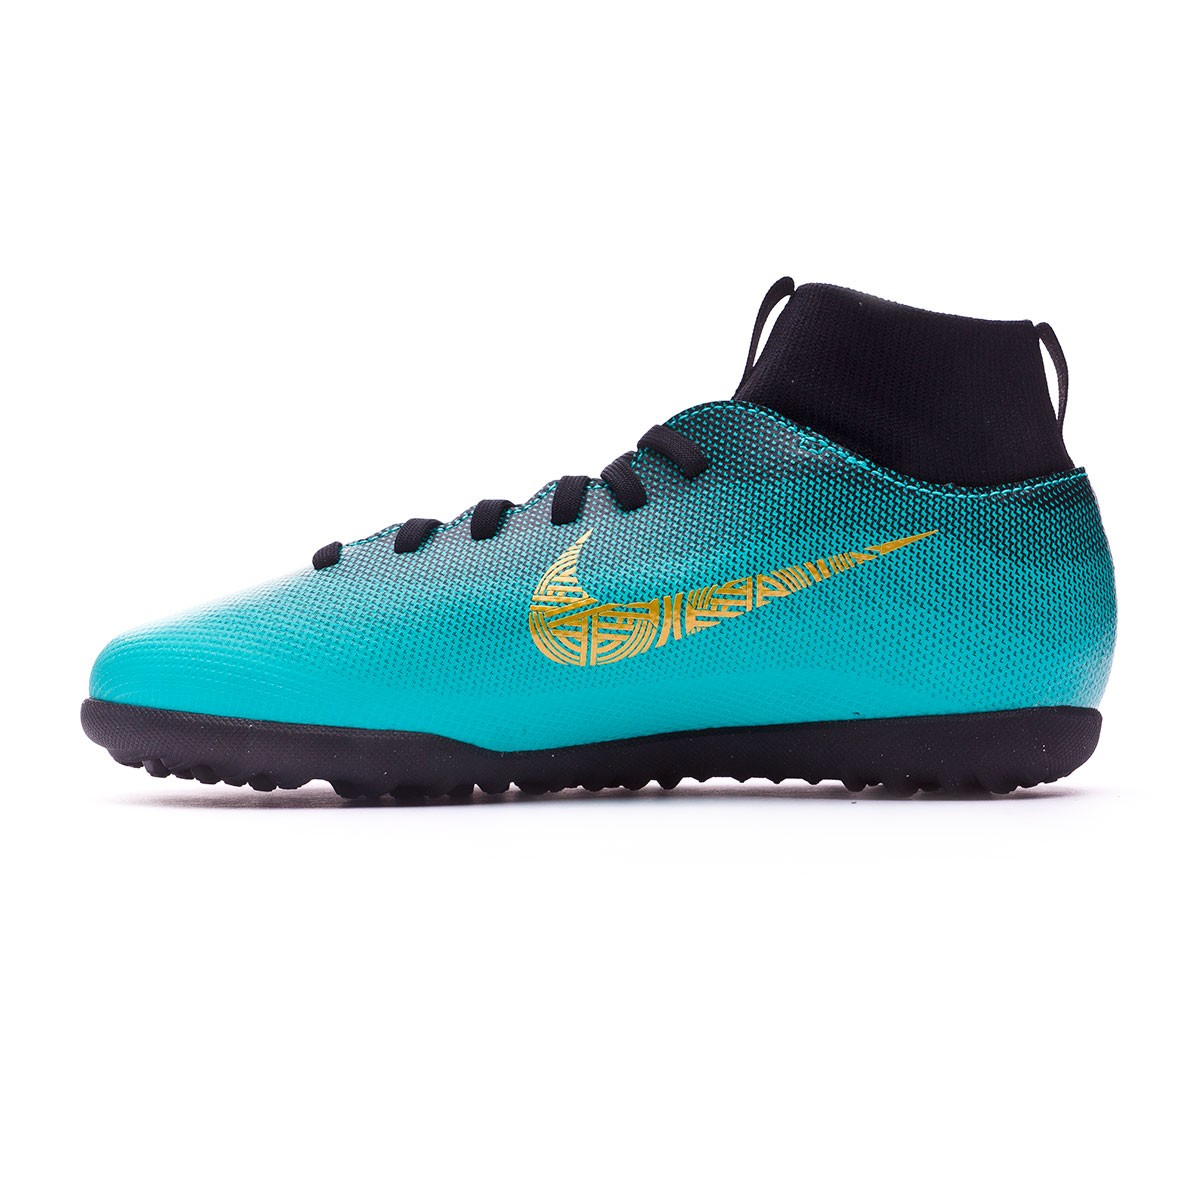 ed062620a0ed3 zapatillas nike mercurial cr7